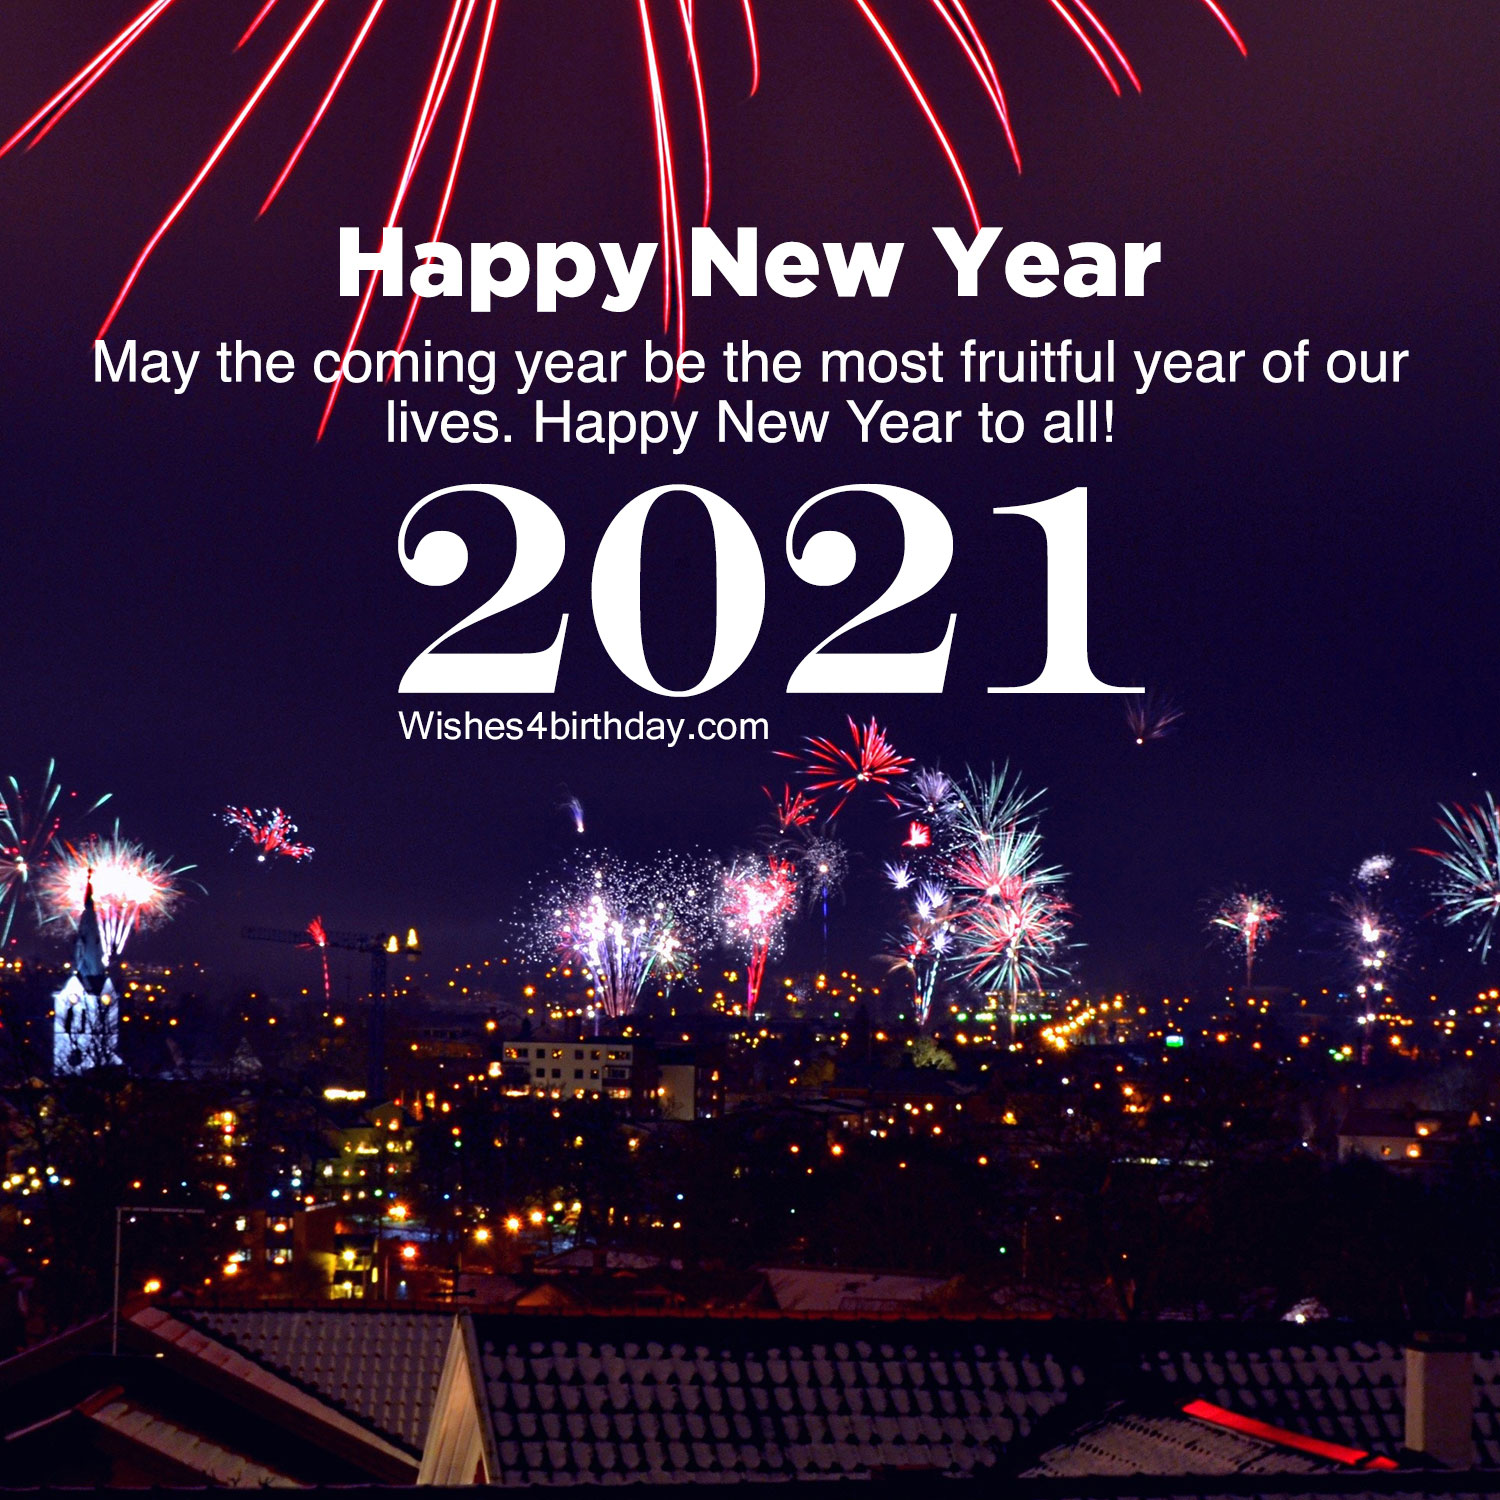 Happy new year images for an amazing 2021 - Happy Birthday Wishes, Memes, SMS & Greeting eCard ...